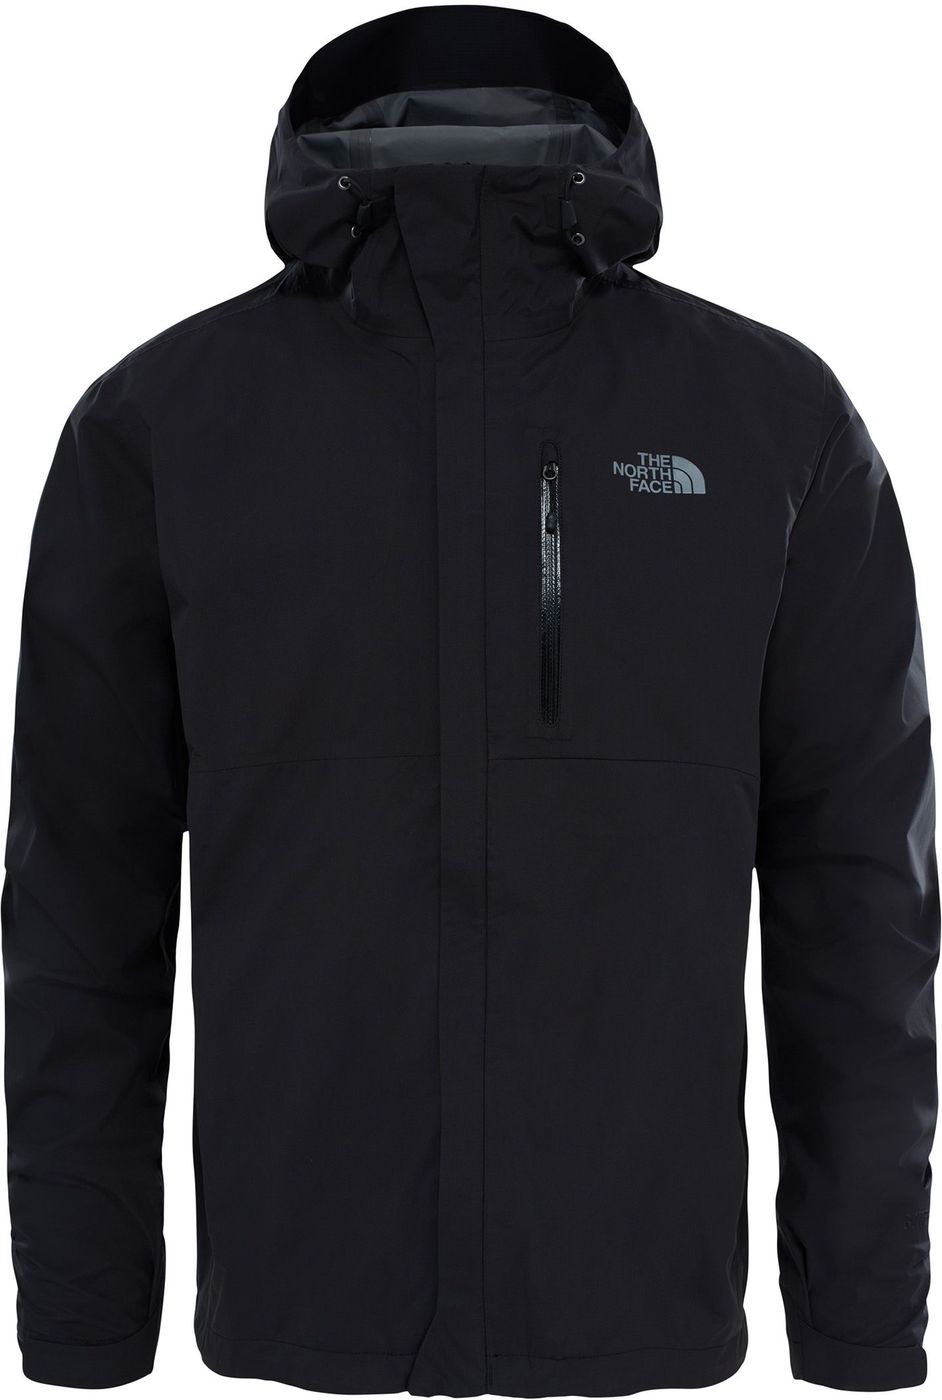 north face tnf